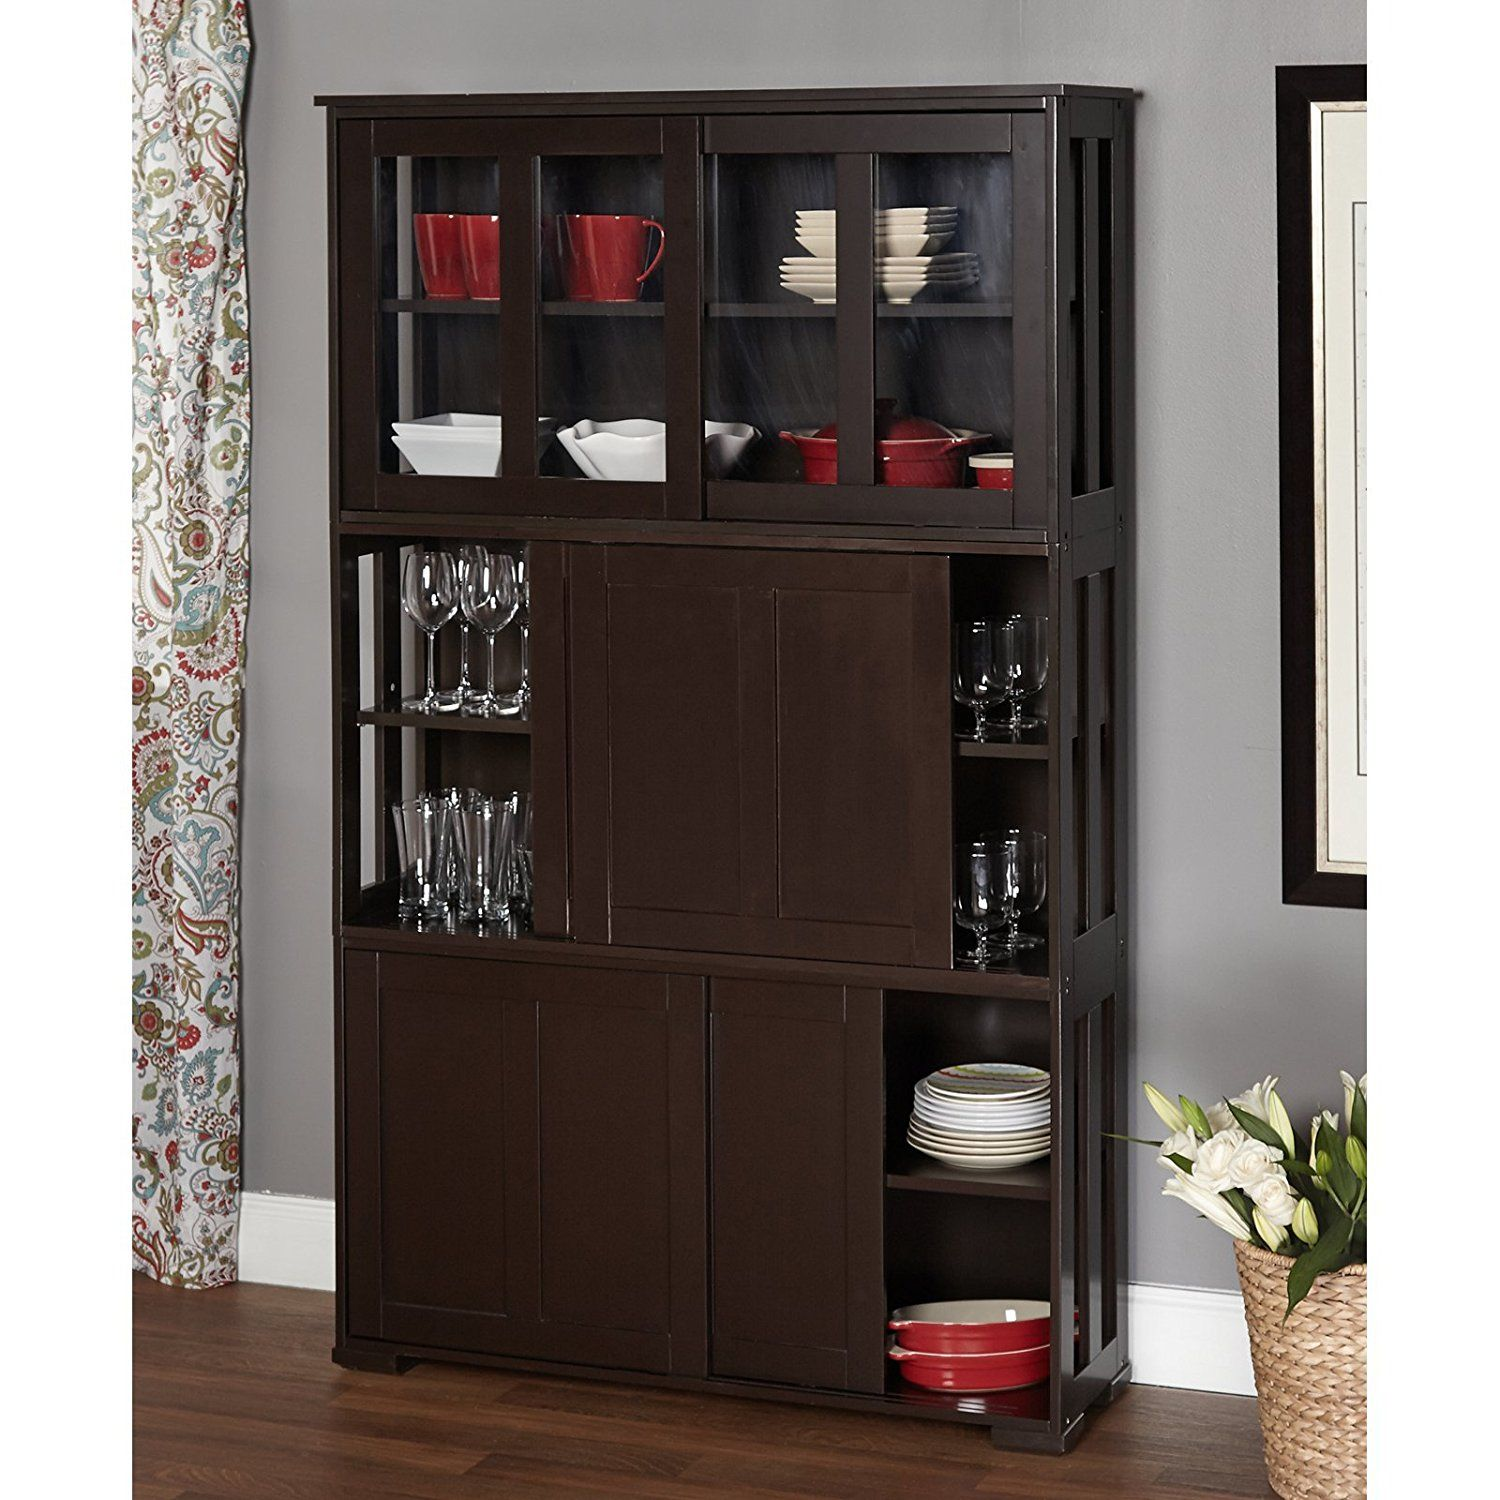 Corner China Cabinet With Glass Doors Stackable Dining Room Furniture Hutch New